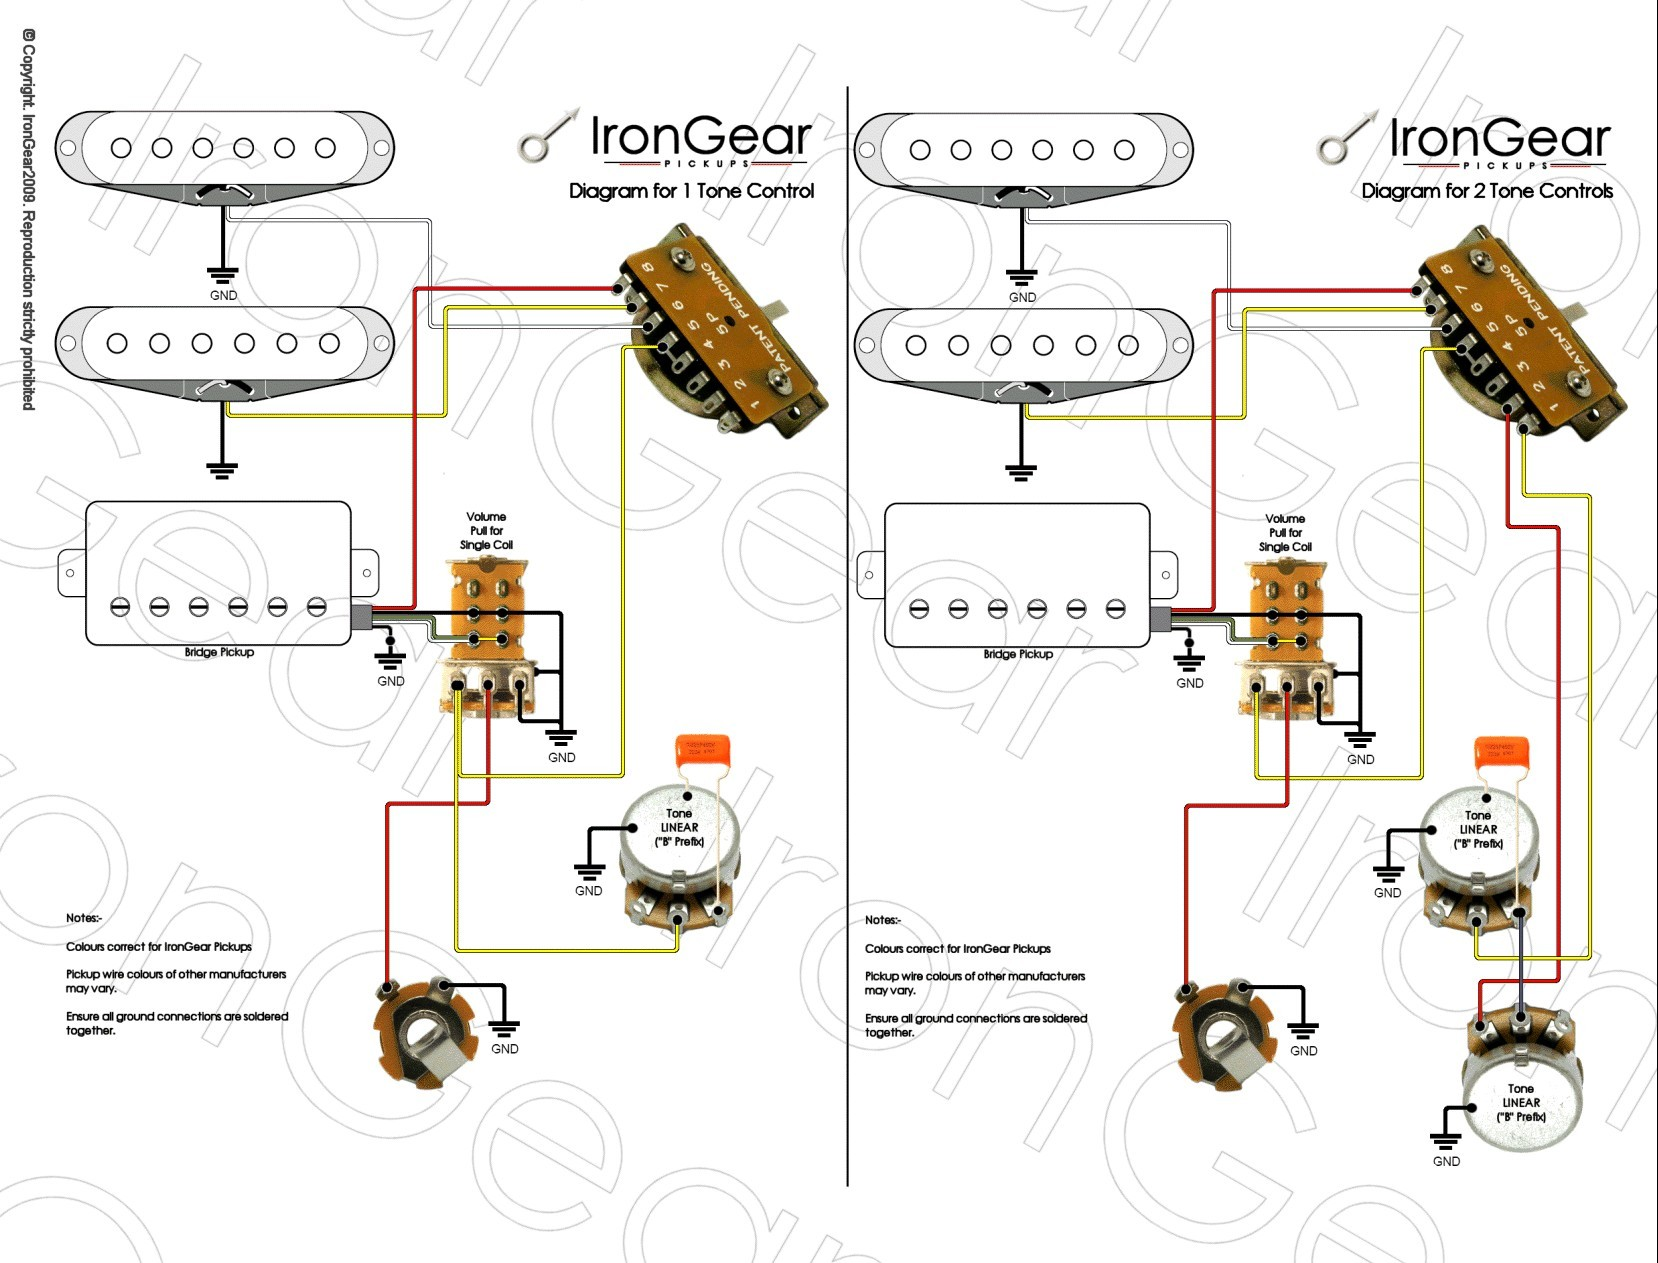 Epiphone 3 Humbucker Wiring Diagram Electrical Diagrams For Dot 2 Trusted Upgrades